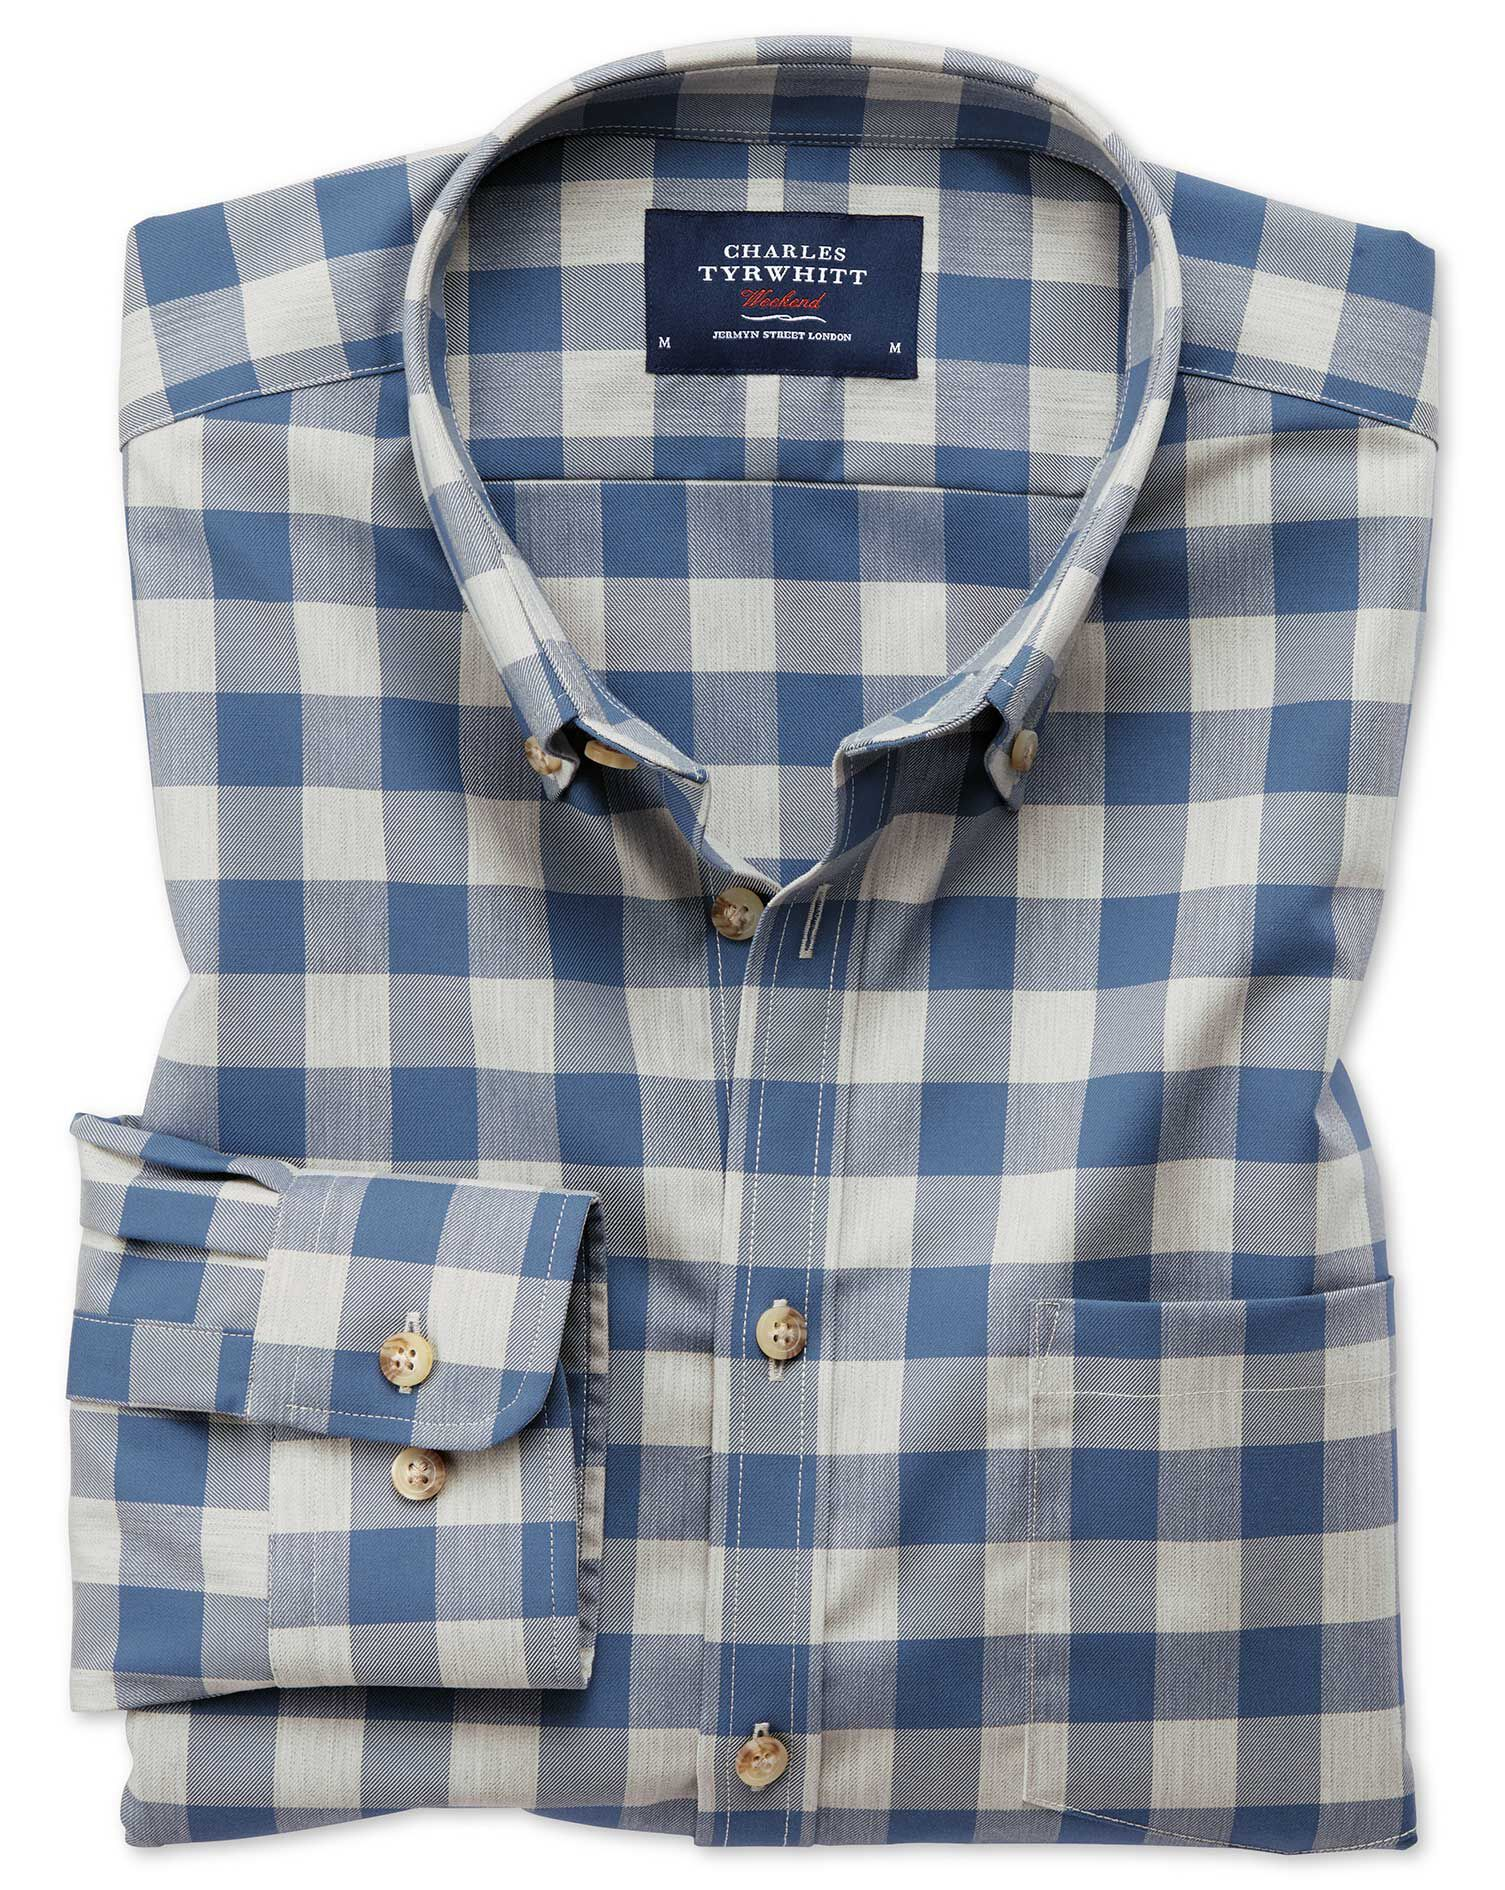 Extra Slim Fit Button-Down Non-Iron Twill Blue and Grey Check Cotton Shirt Single Cuff Size Large by